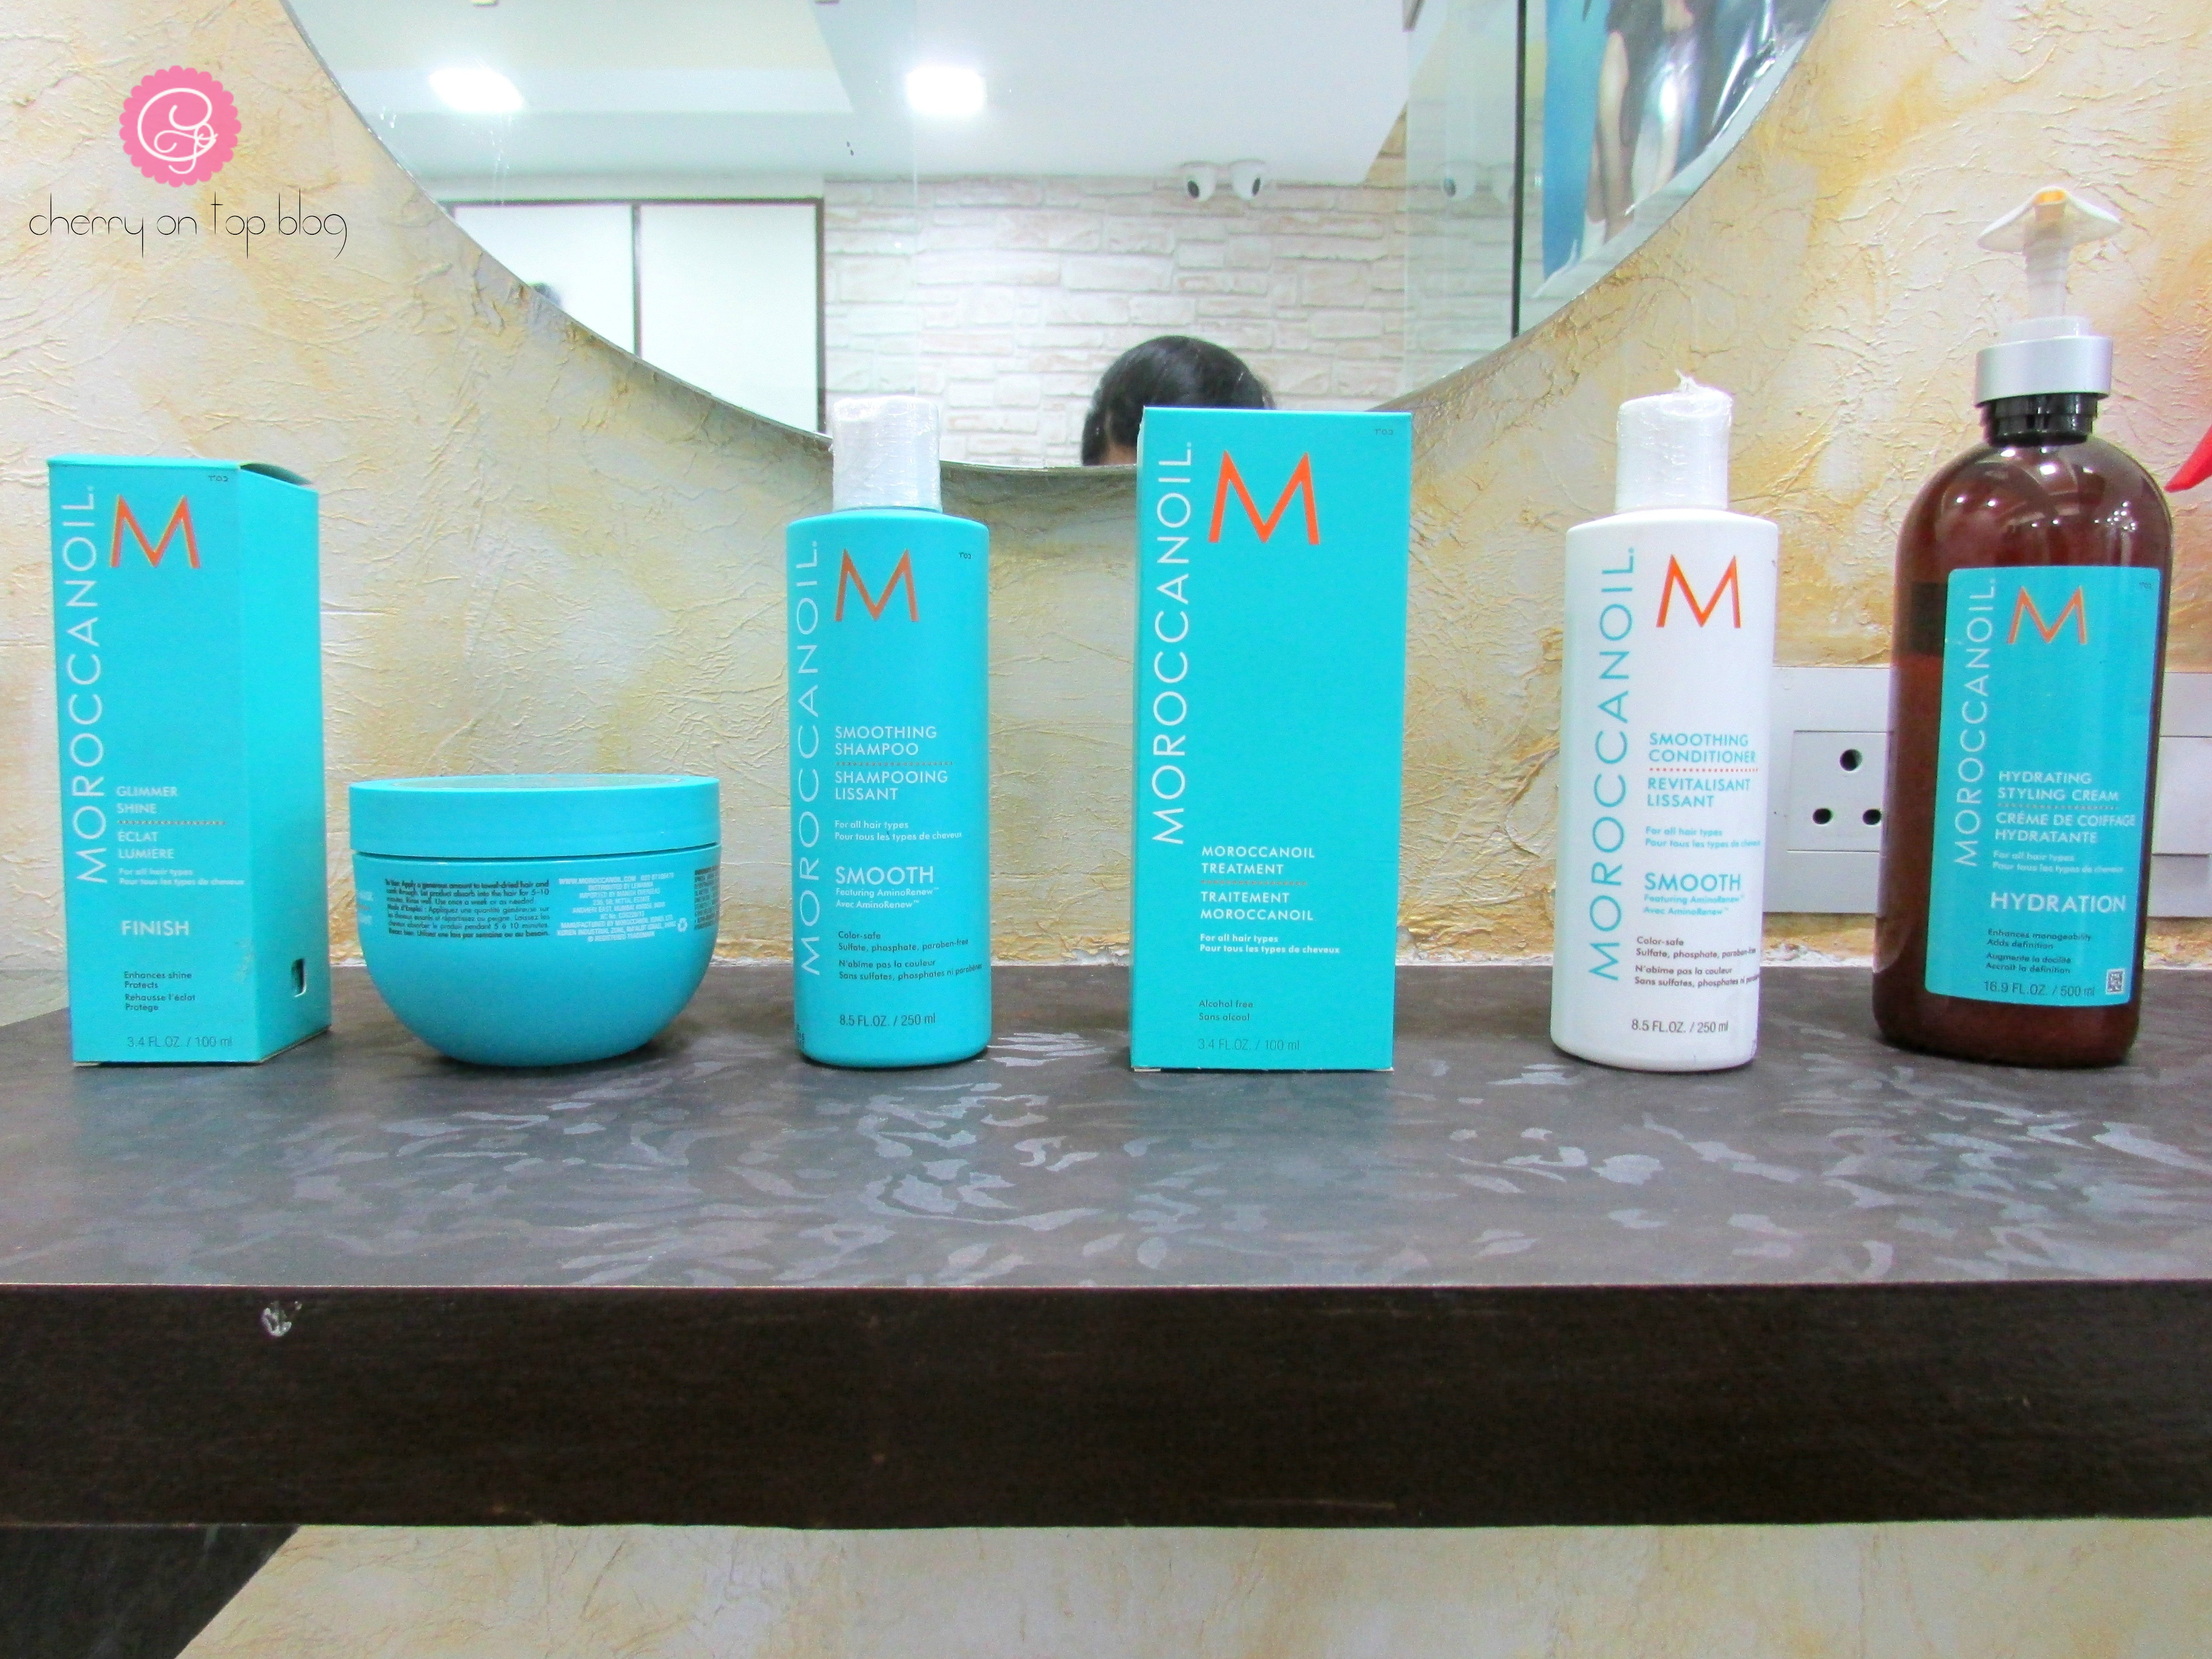 Moroccanoil Smoothing Hair Spa Experience  cherryontopblog.com